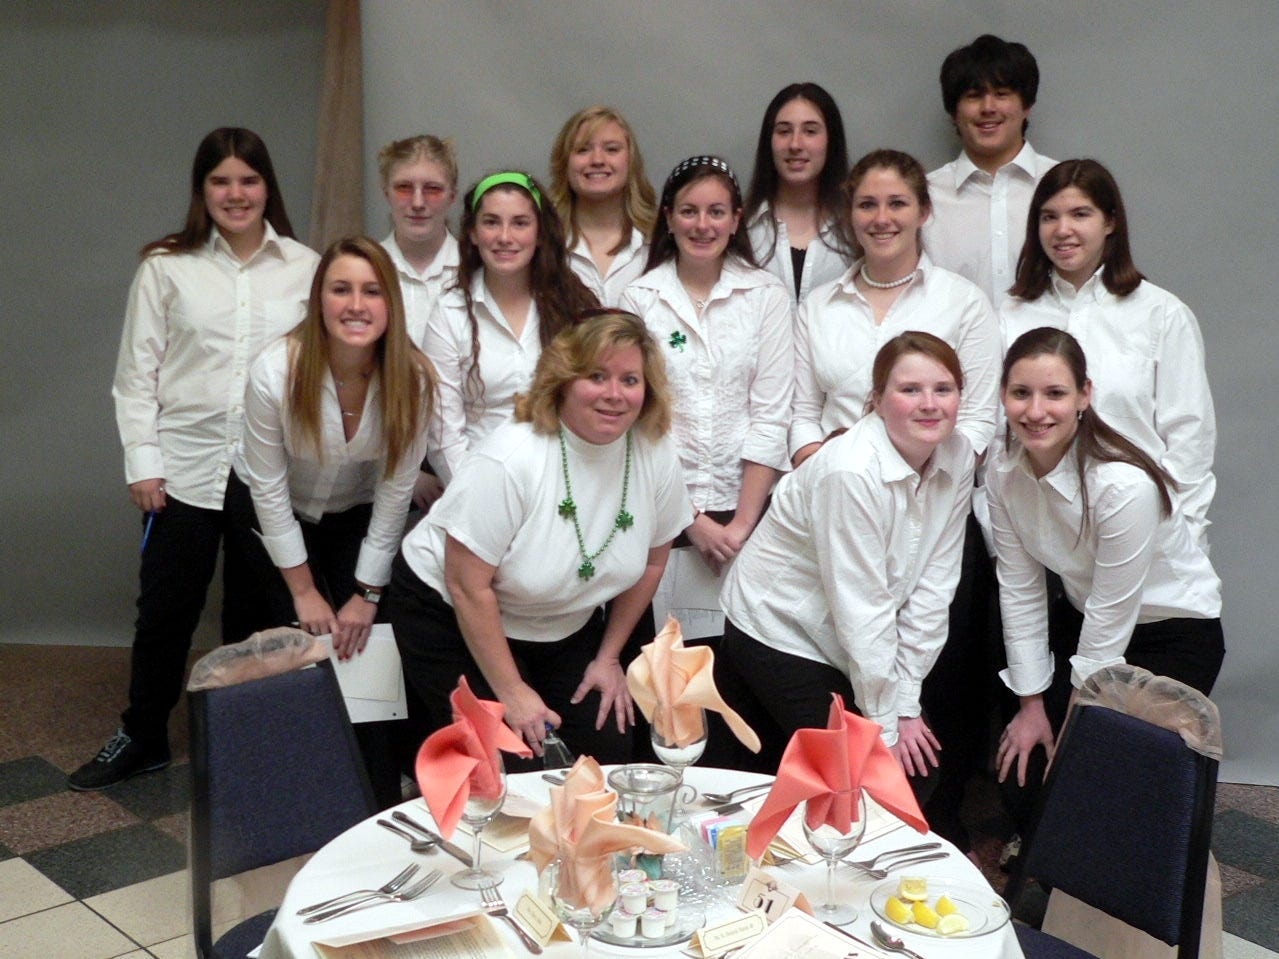 Clinton High School showed their support of the Habitat for Humanity Organization on March 17th by serving as wait staff for the 3rd annual benefit gala.